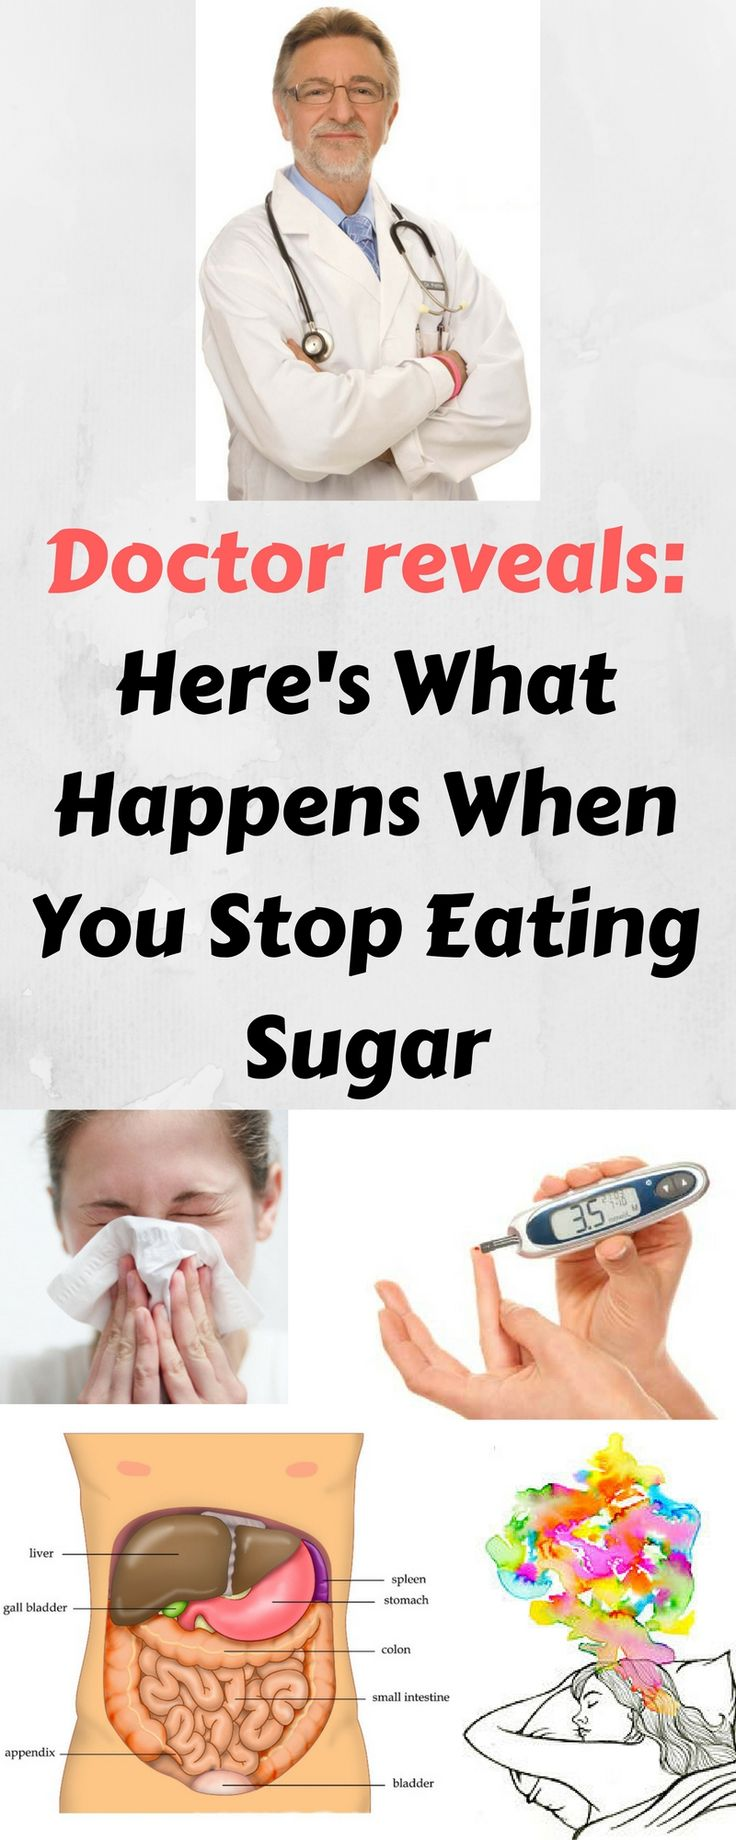 Things That Happen to Your Body When You Stop Eating Sugar!